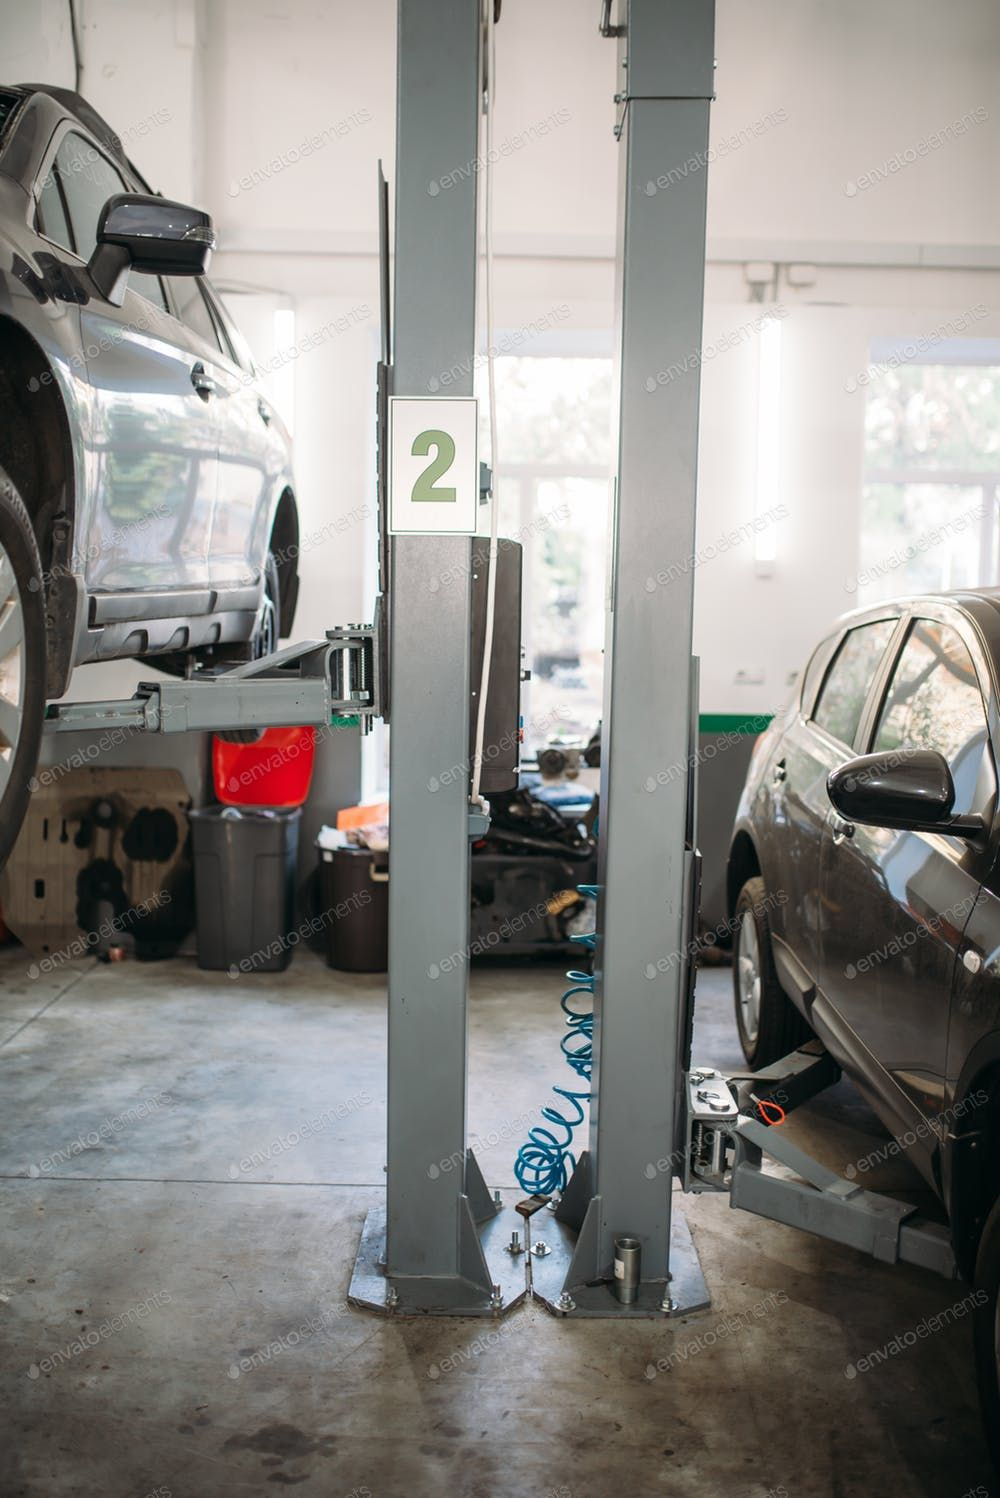 Car Repair On The Lift In Garage Nobody By Nomadsoul1 S Photos Ad Ad Repair Car Garage Lift Auto Repair Repair Car